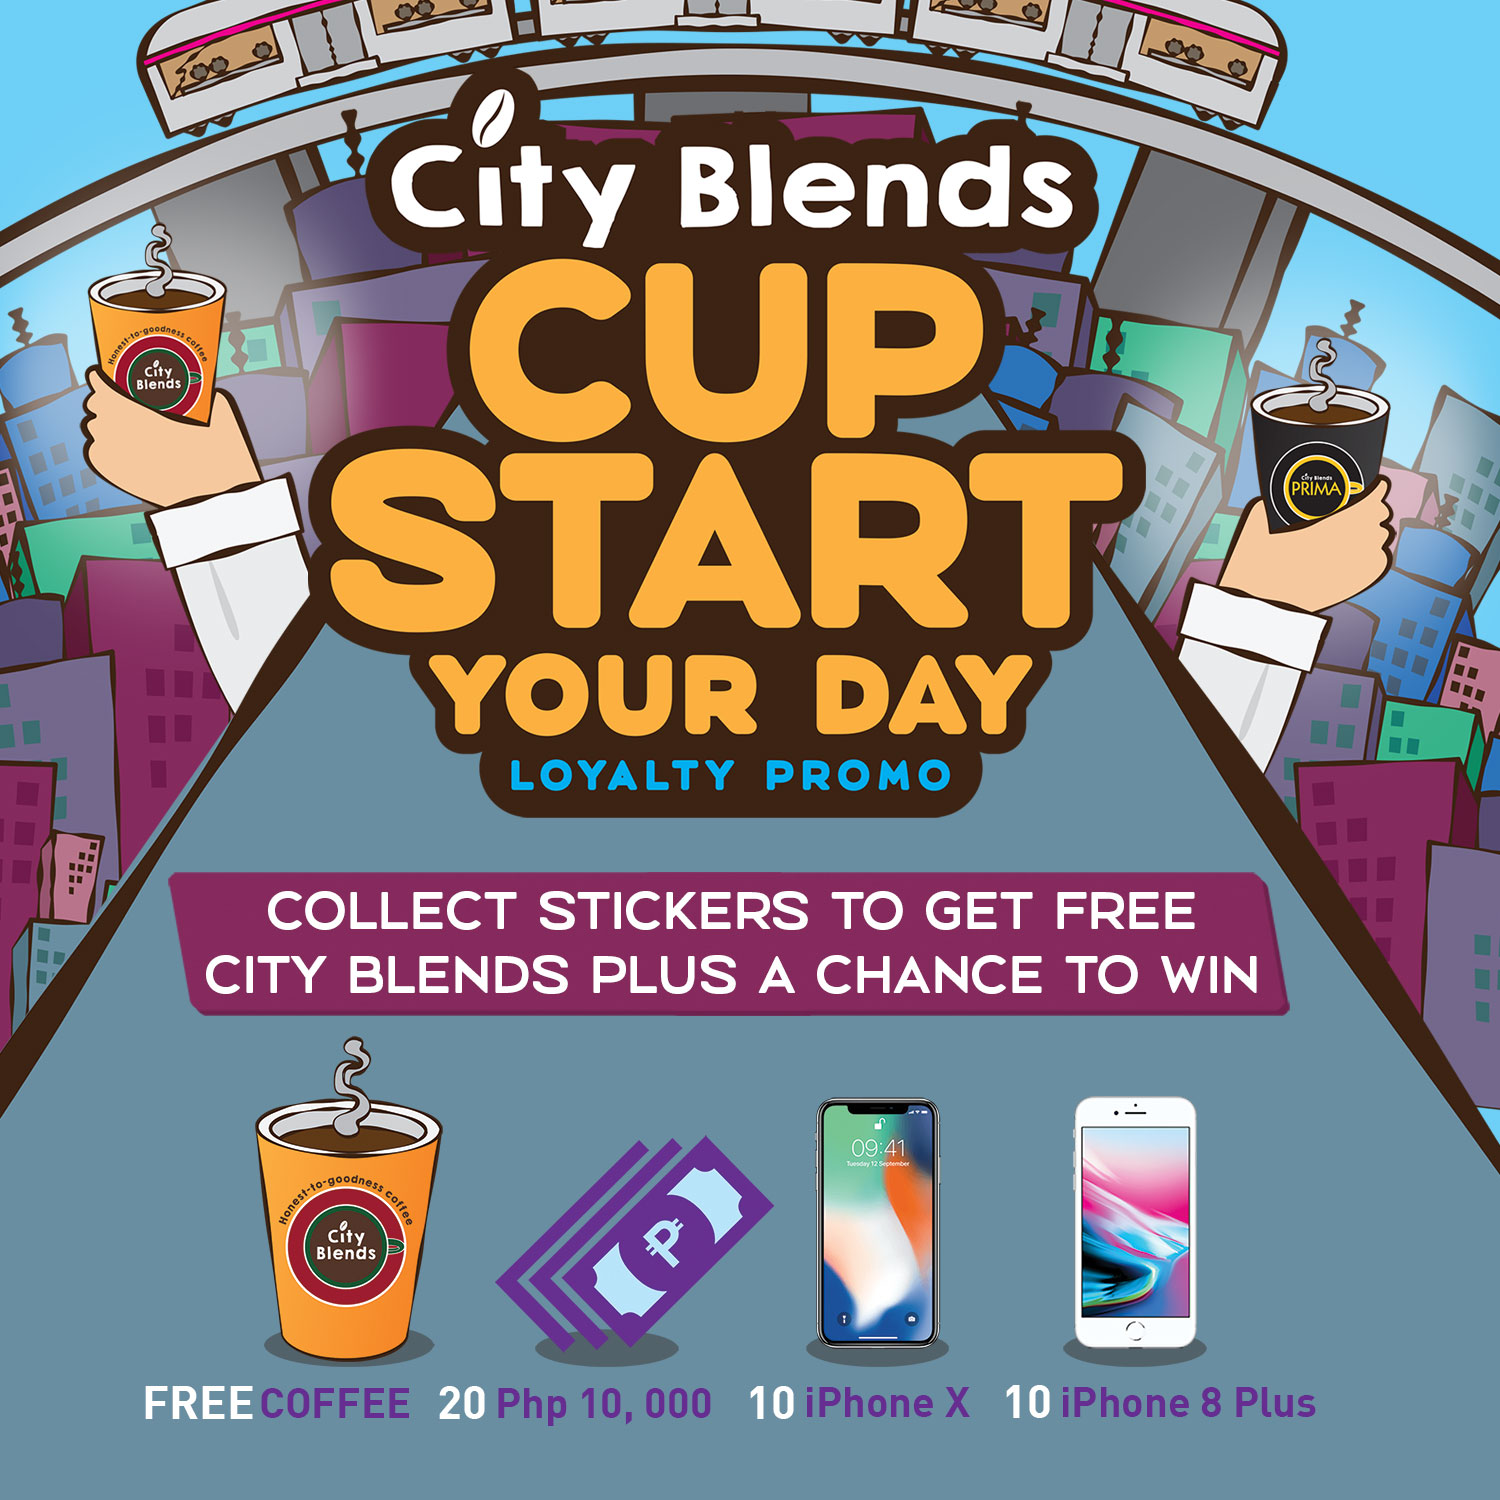 CITY BLENDS: Cup Start Your Day Loyalty Promo